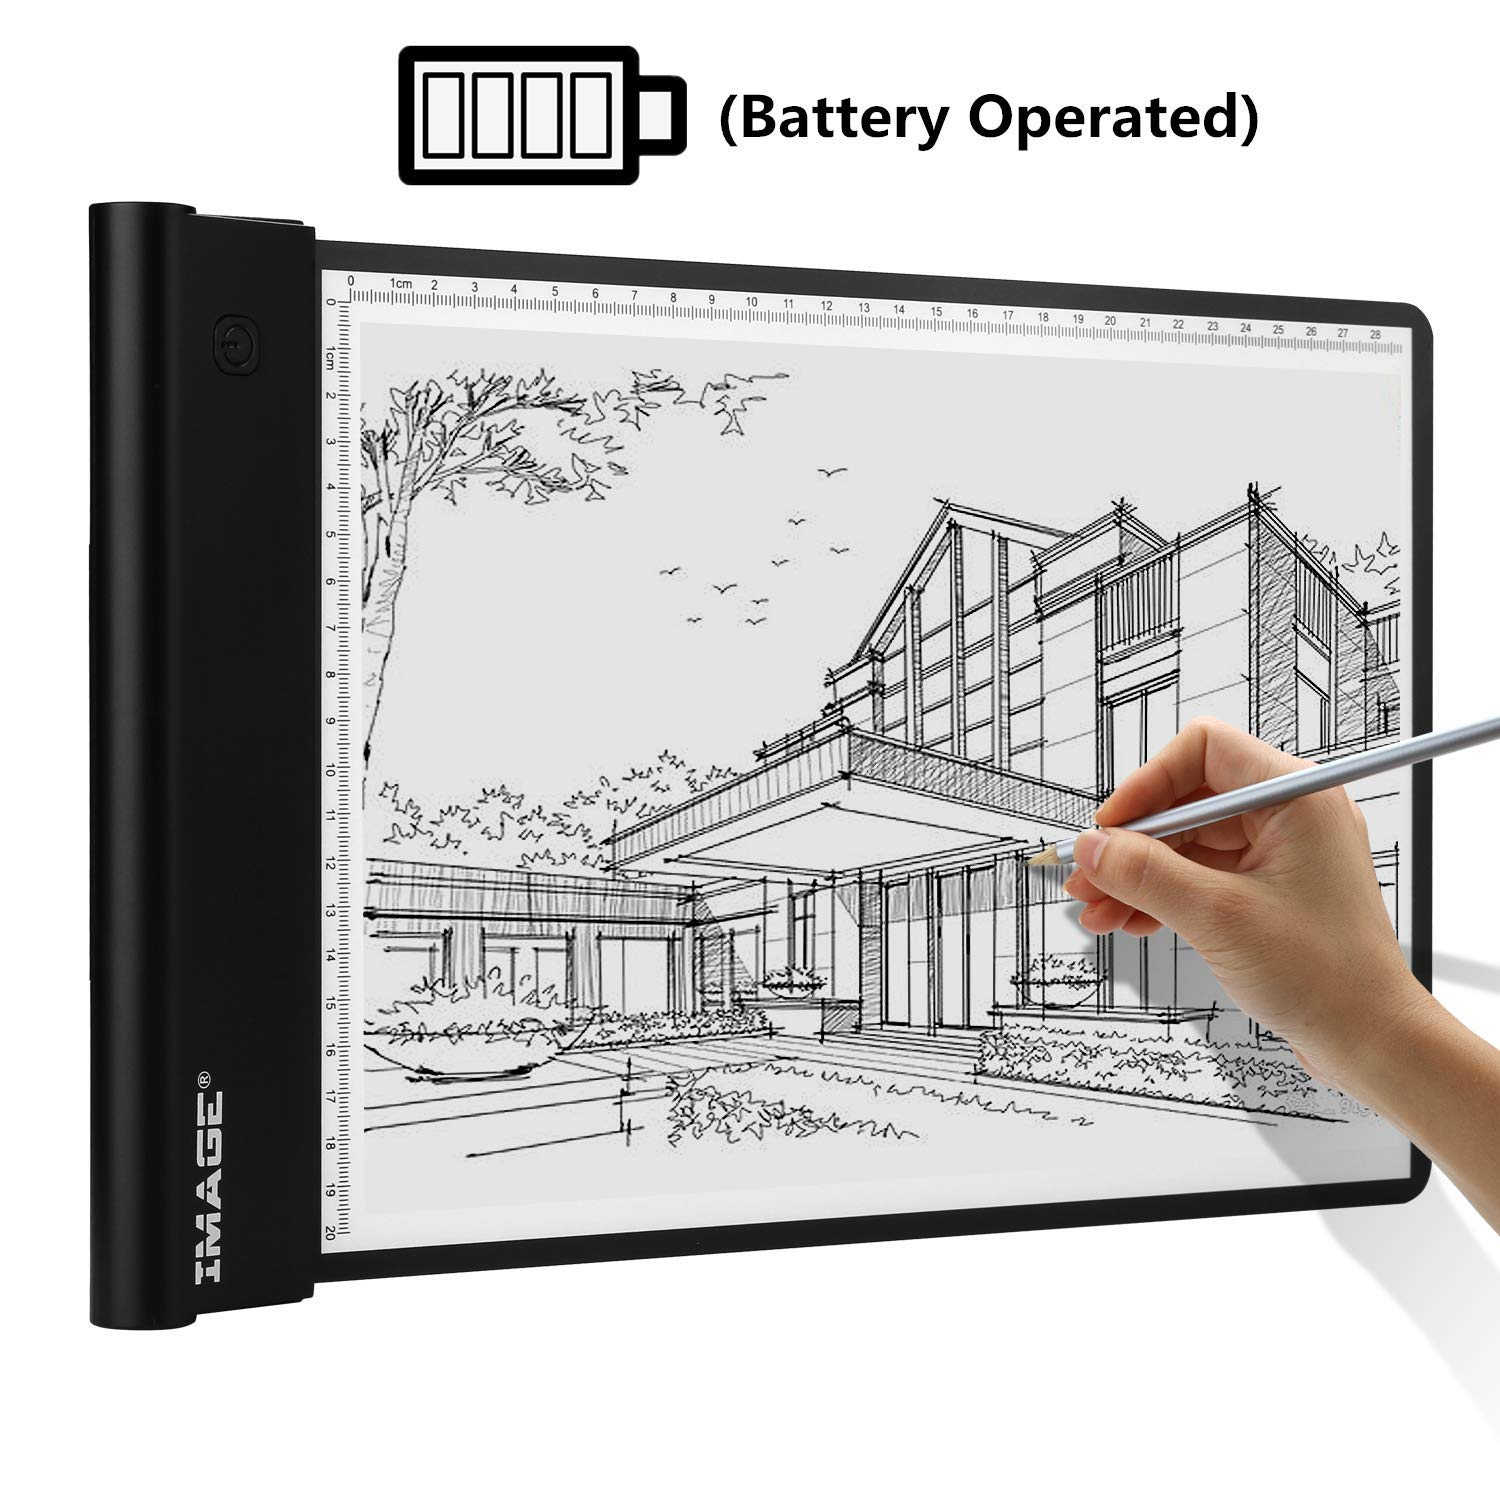 A4 Light Box Wireless Artcraft Tracing Pad Battery Operated Ultra-Thin Light Pad Physical Button Control Brightness Dimmable with Memory Function for Tatoo Drawing Sketching Designing Painting by IMAGE